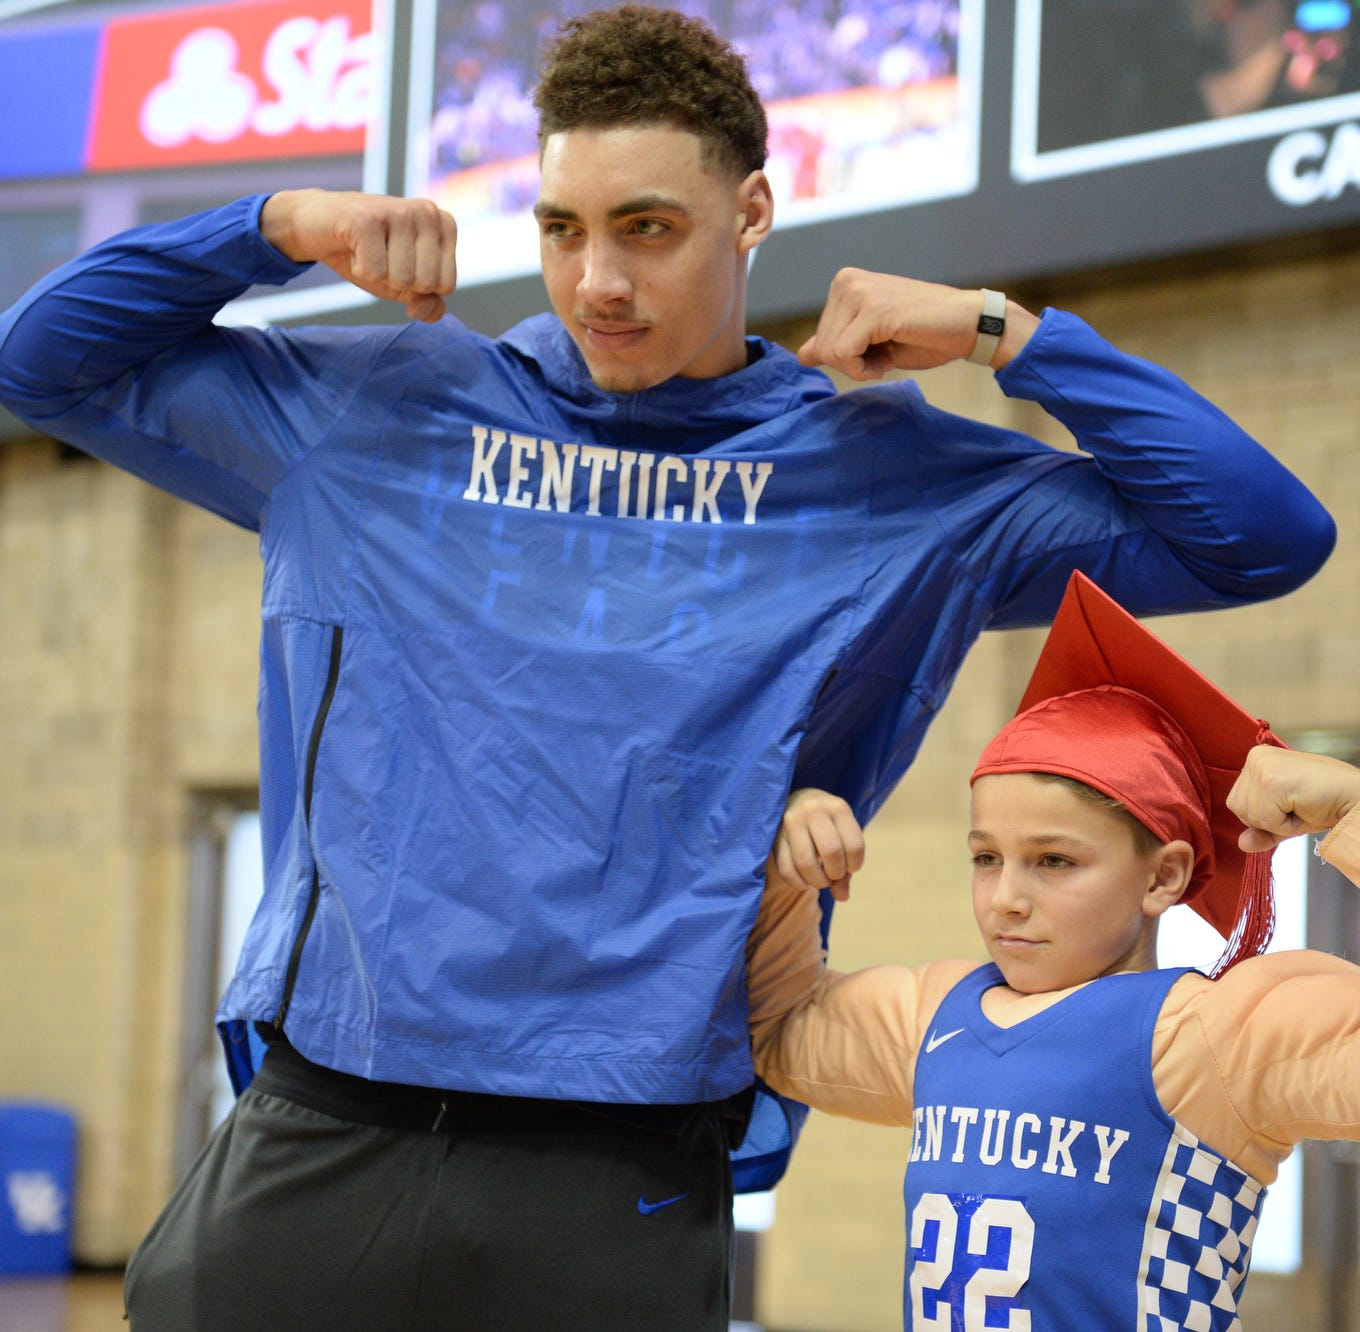 Kentucky's Reid Travis will miss at least two weeks with knee injury